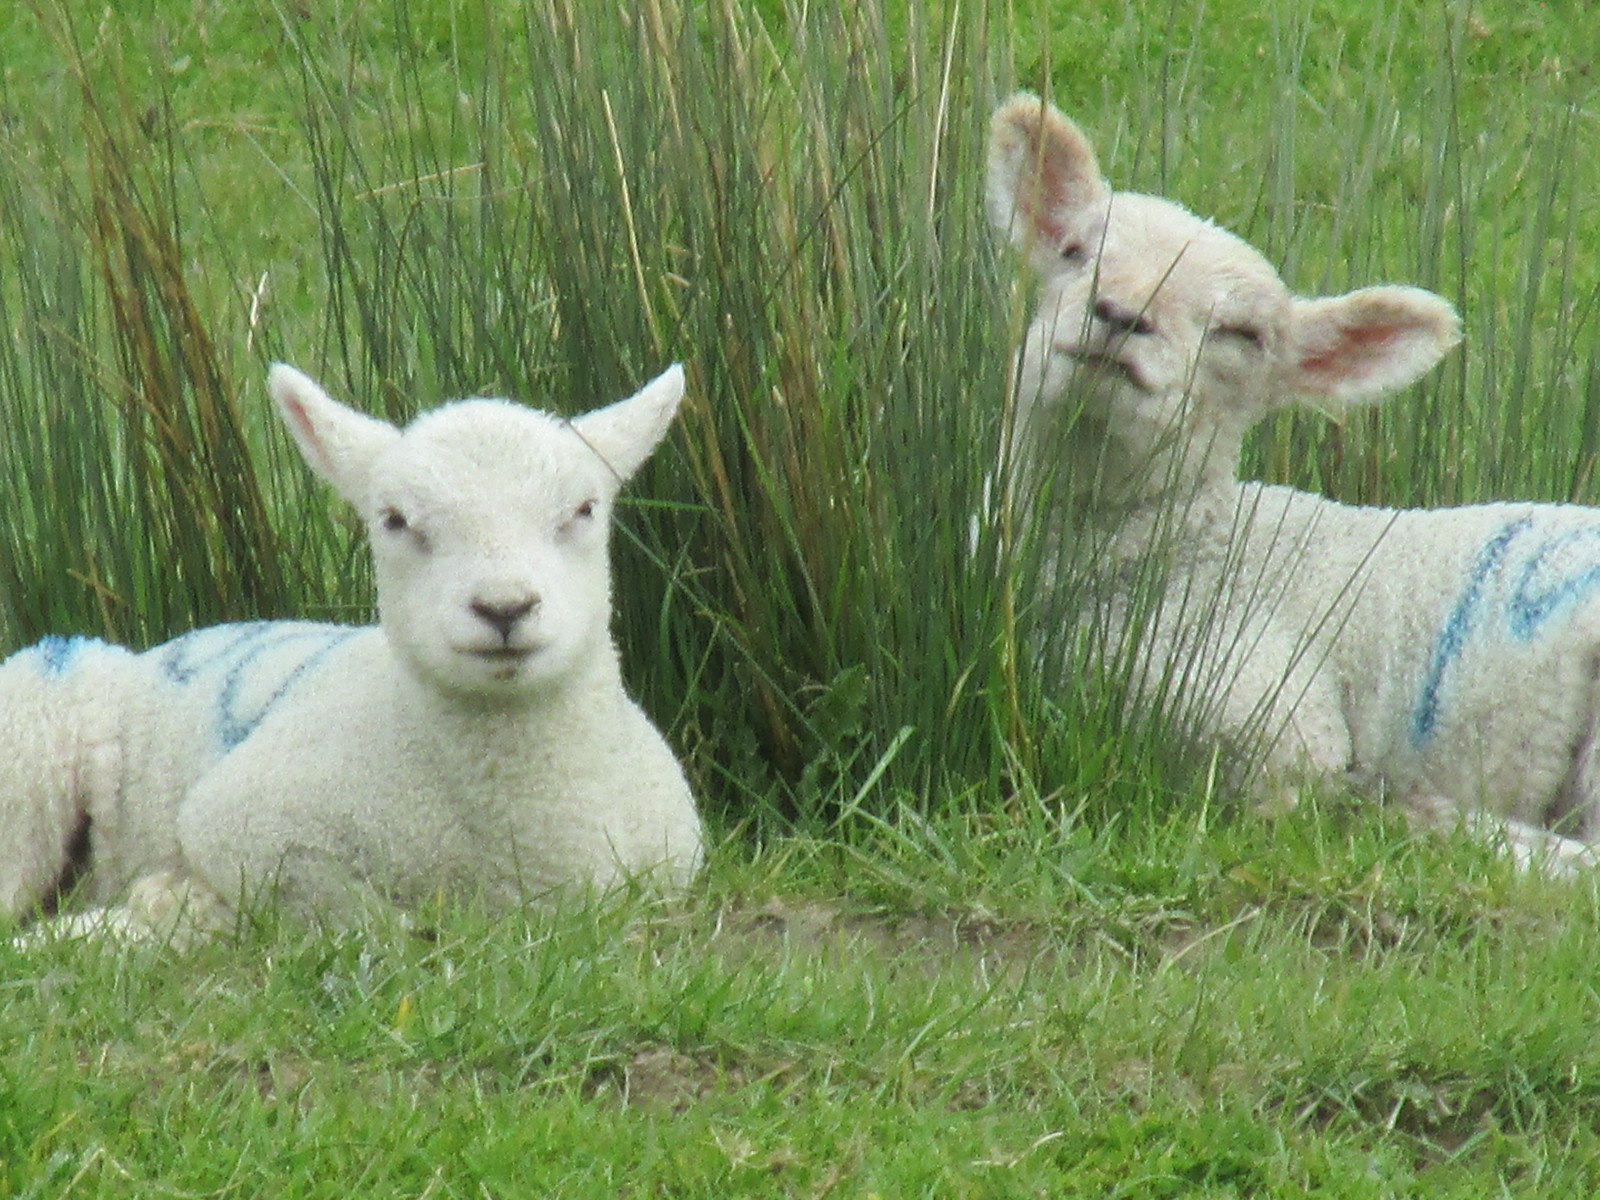 April 17, 2017: Uckfield to Lewes Two lambs resting by the River Ouse.